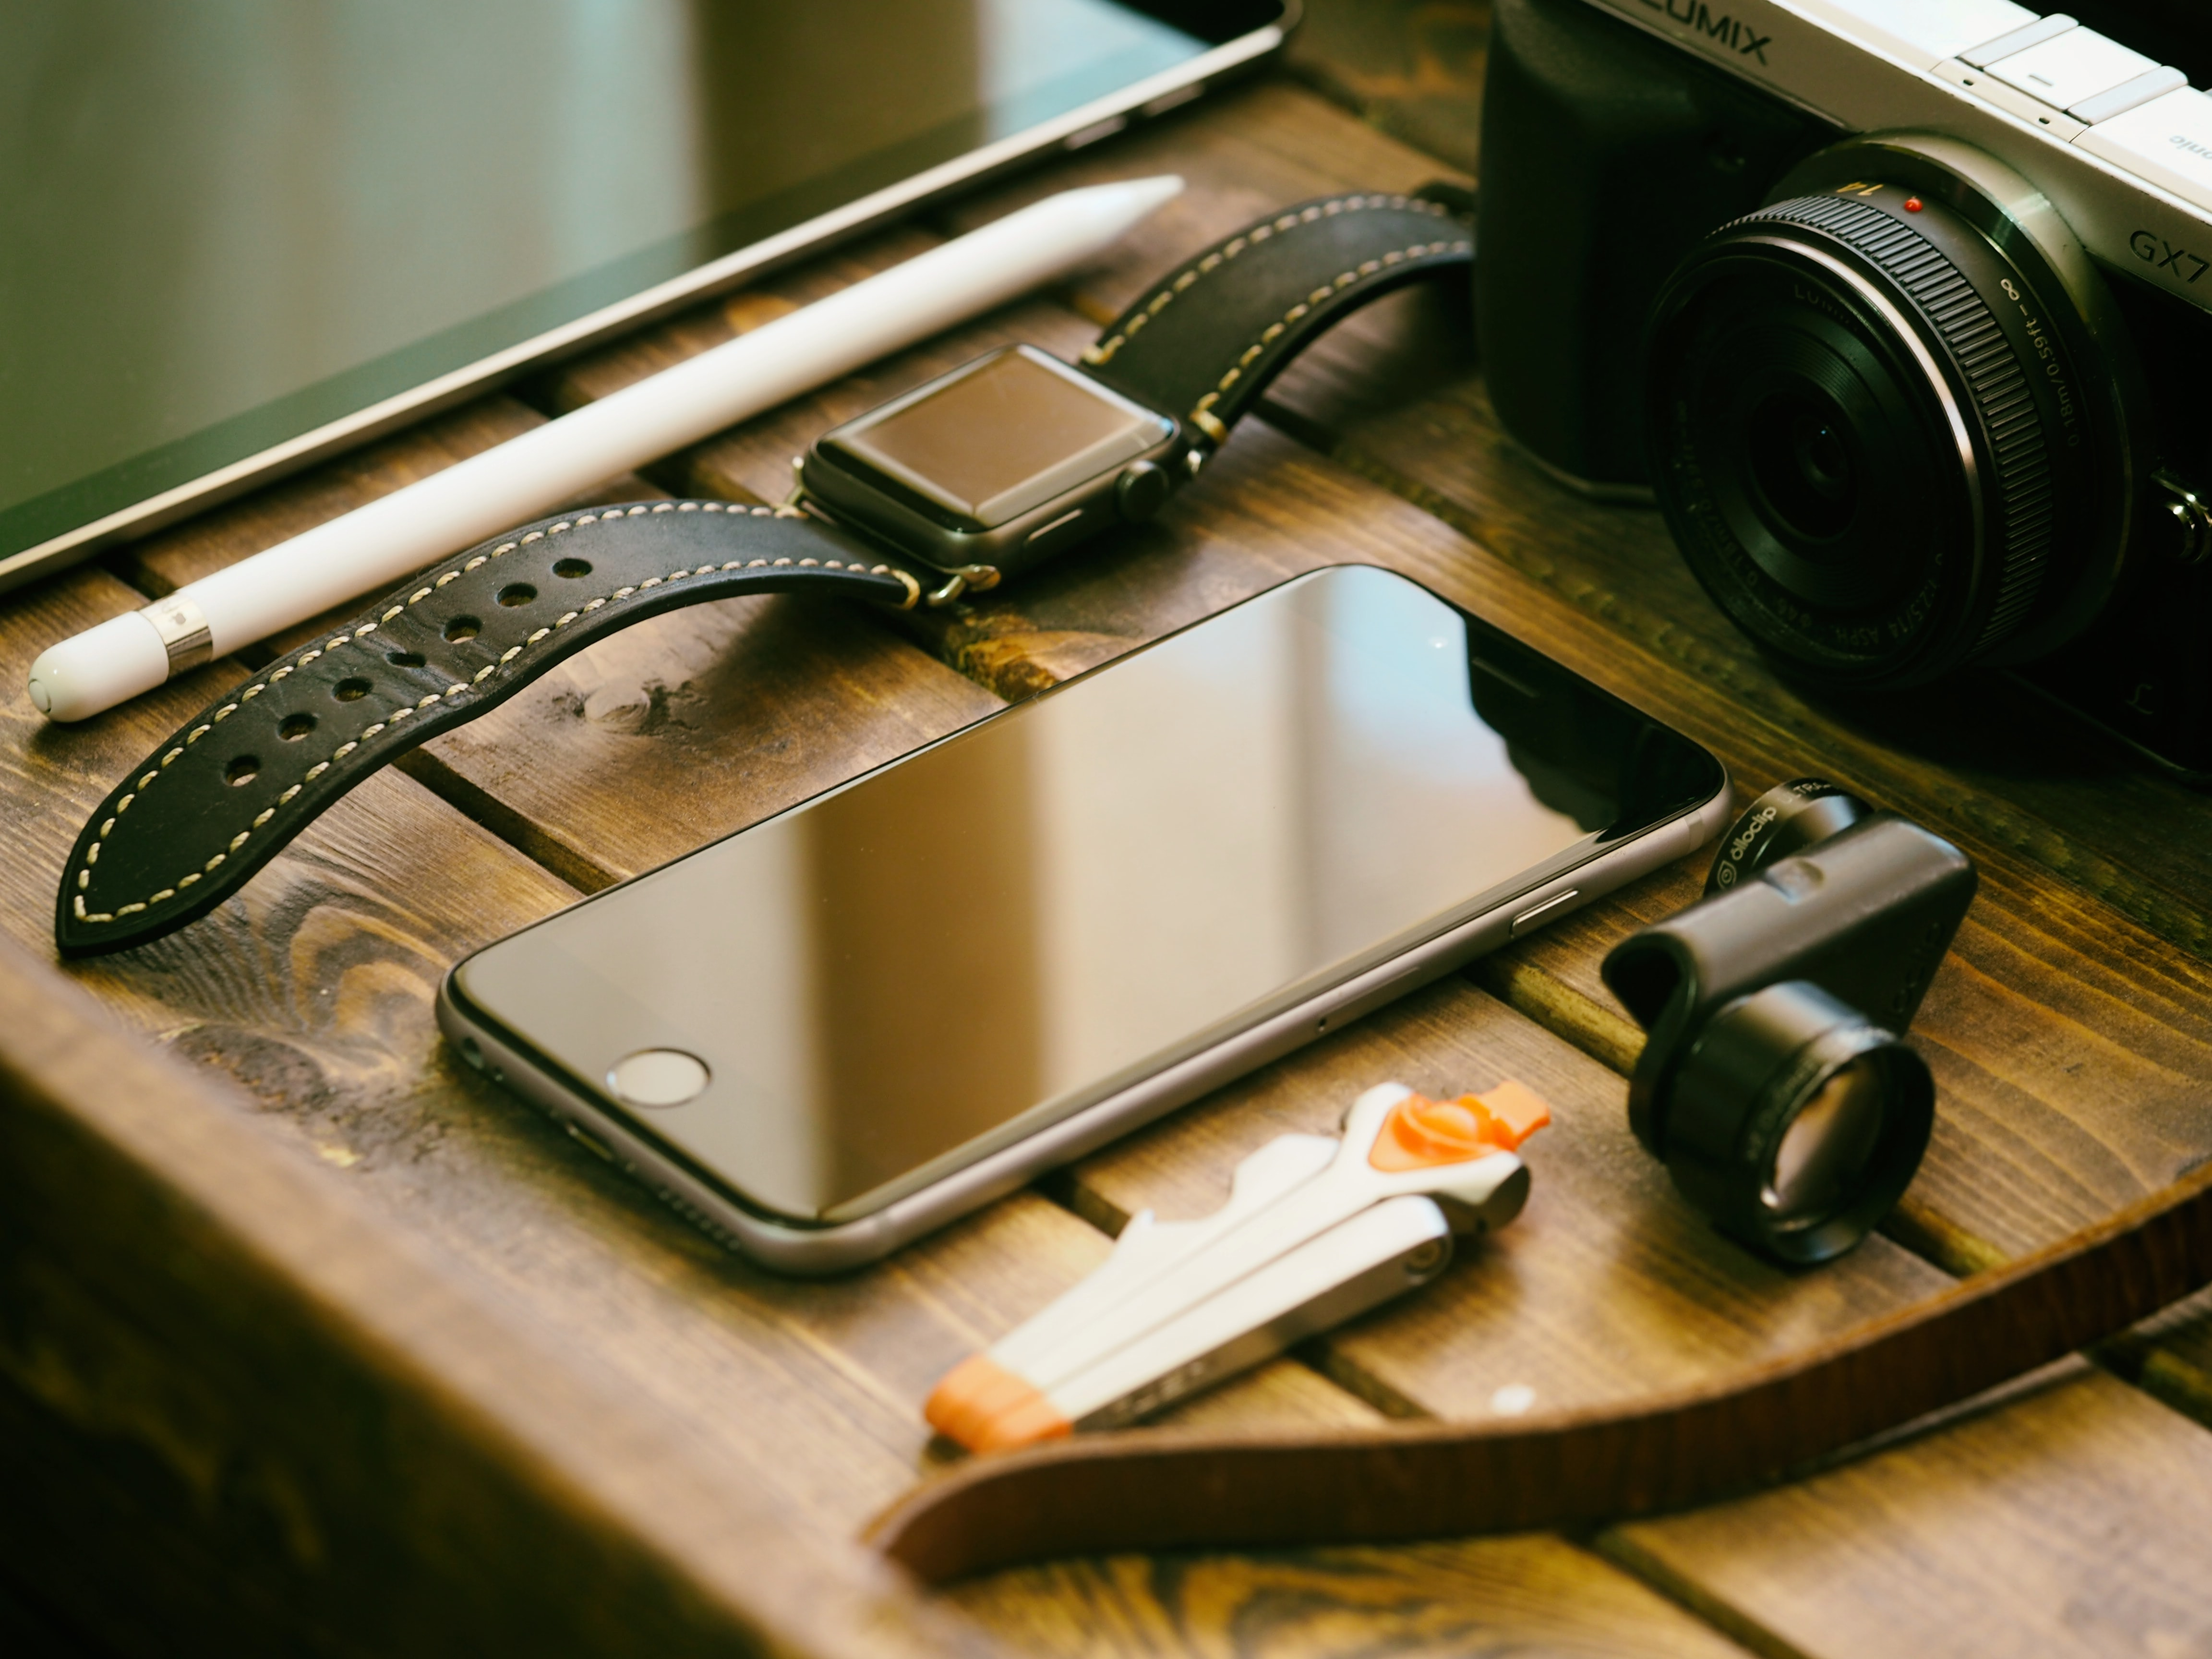 An iPhone, an Apple Watch and a digital camera on a wooden surface